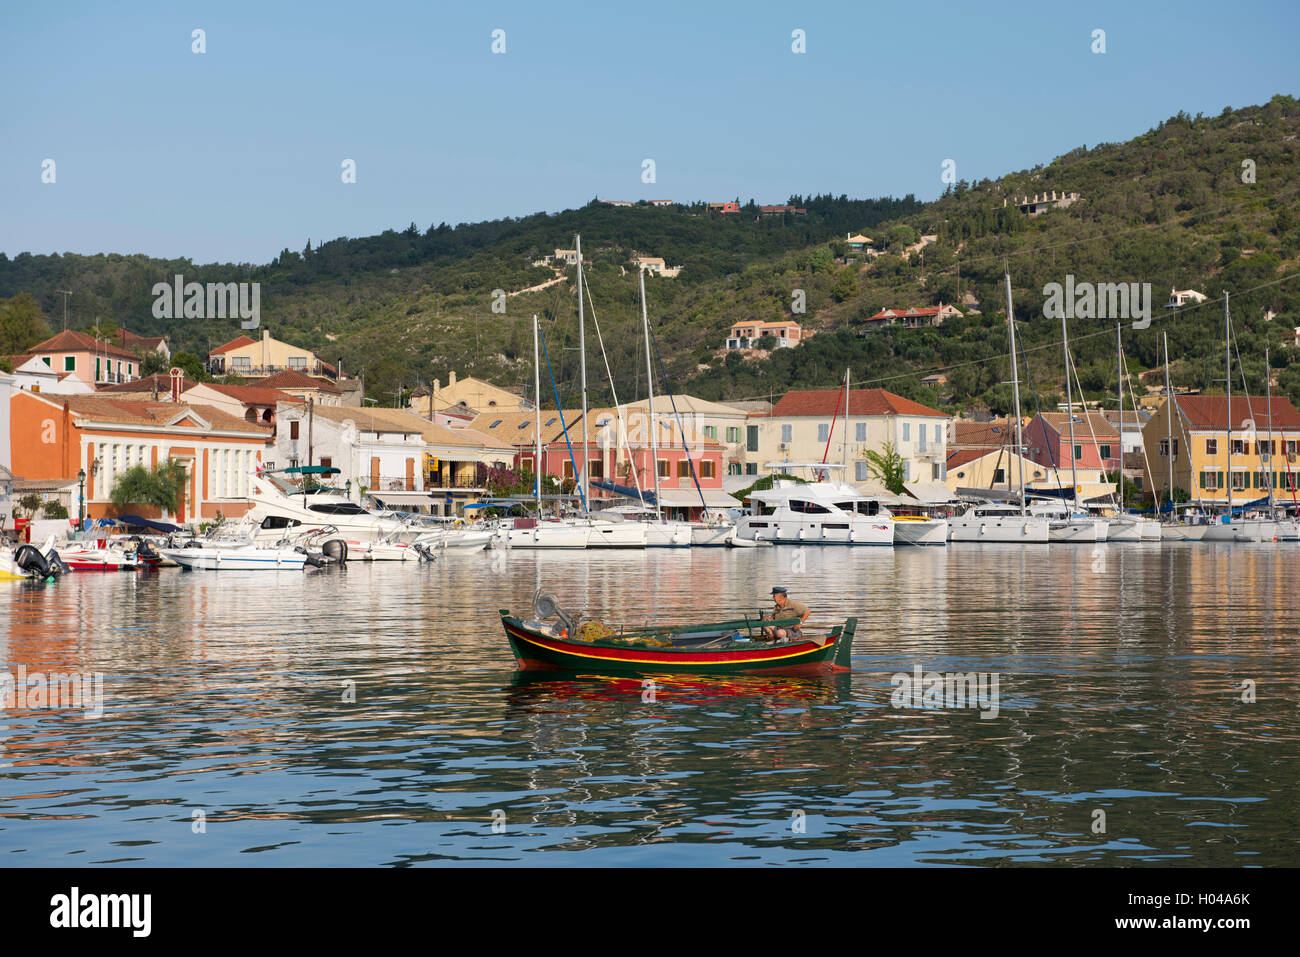 A colourful old fishing boat in Gaios harbour at sunrise on Paxos, The Ionian Islands, Greece, Europe - Stock Image